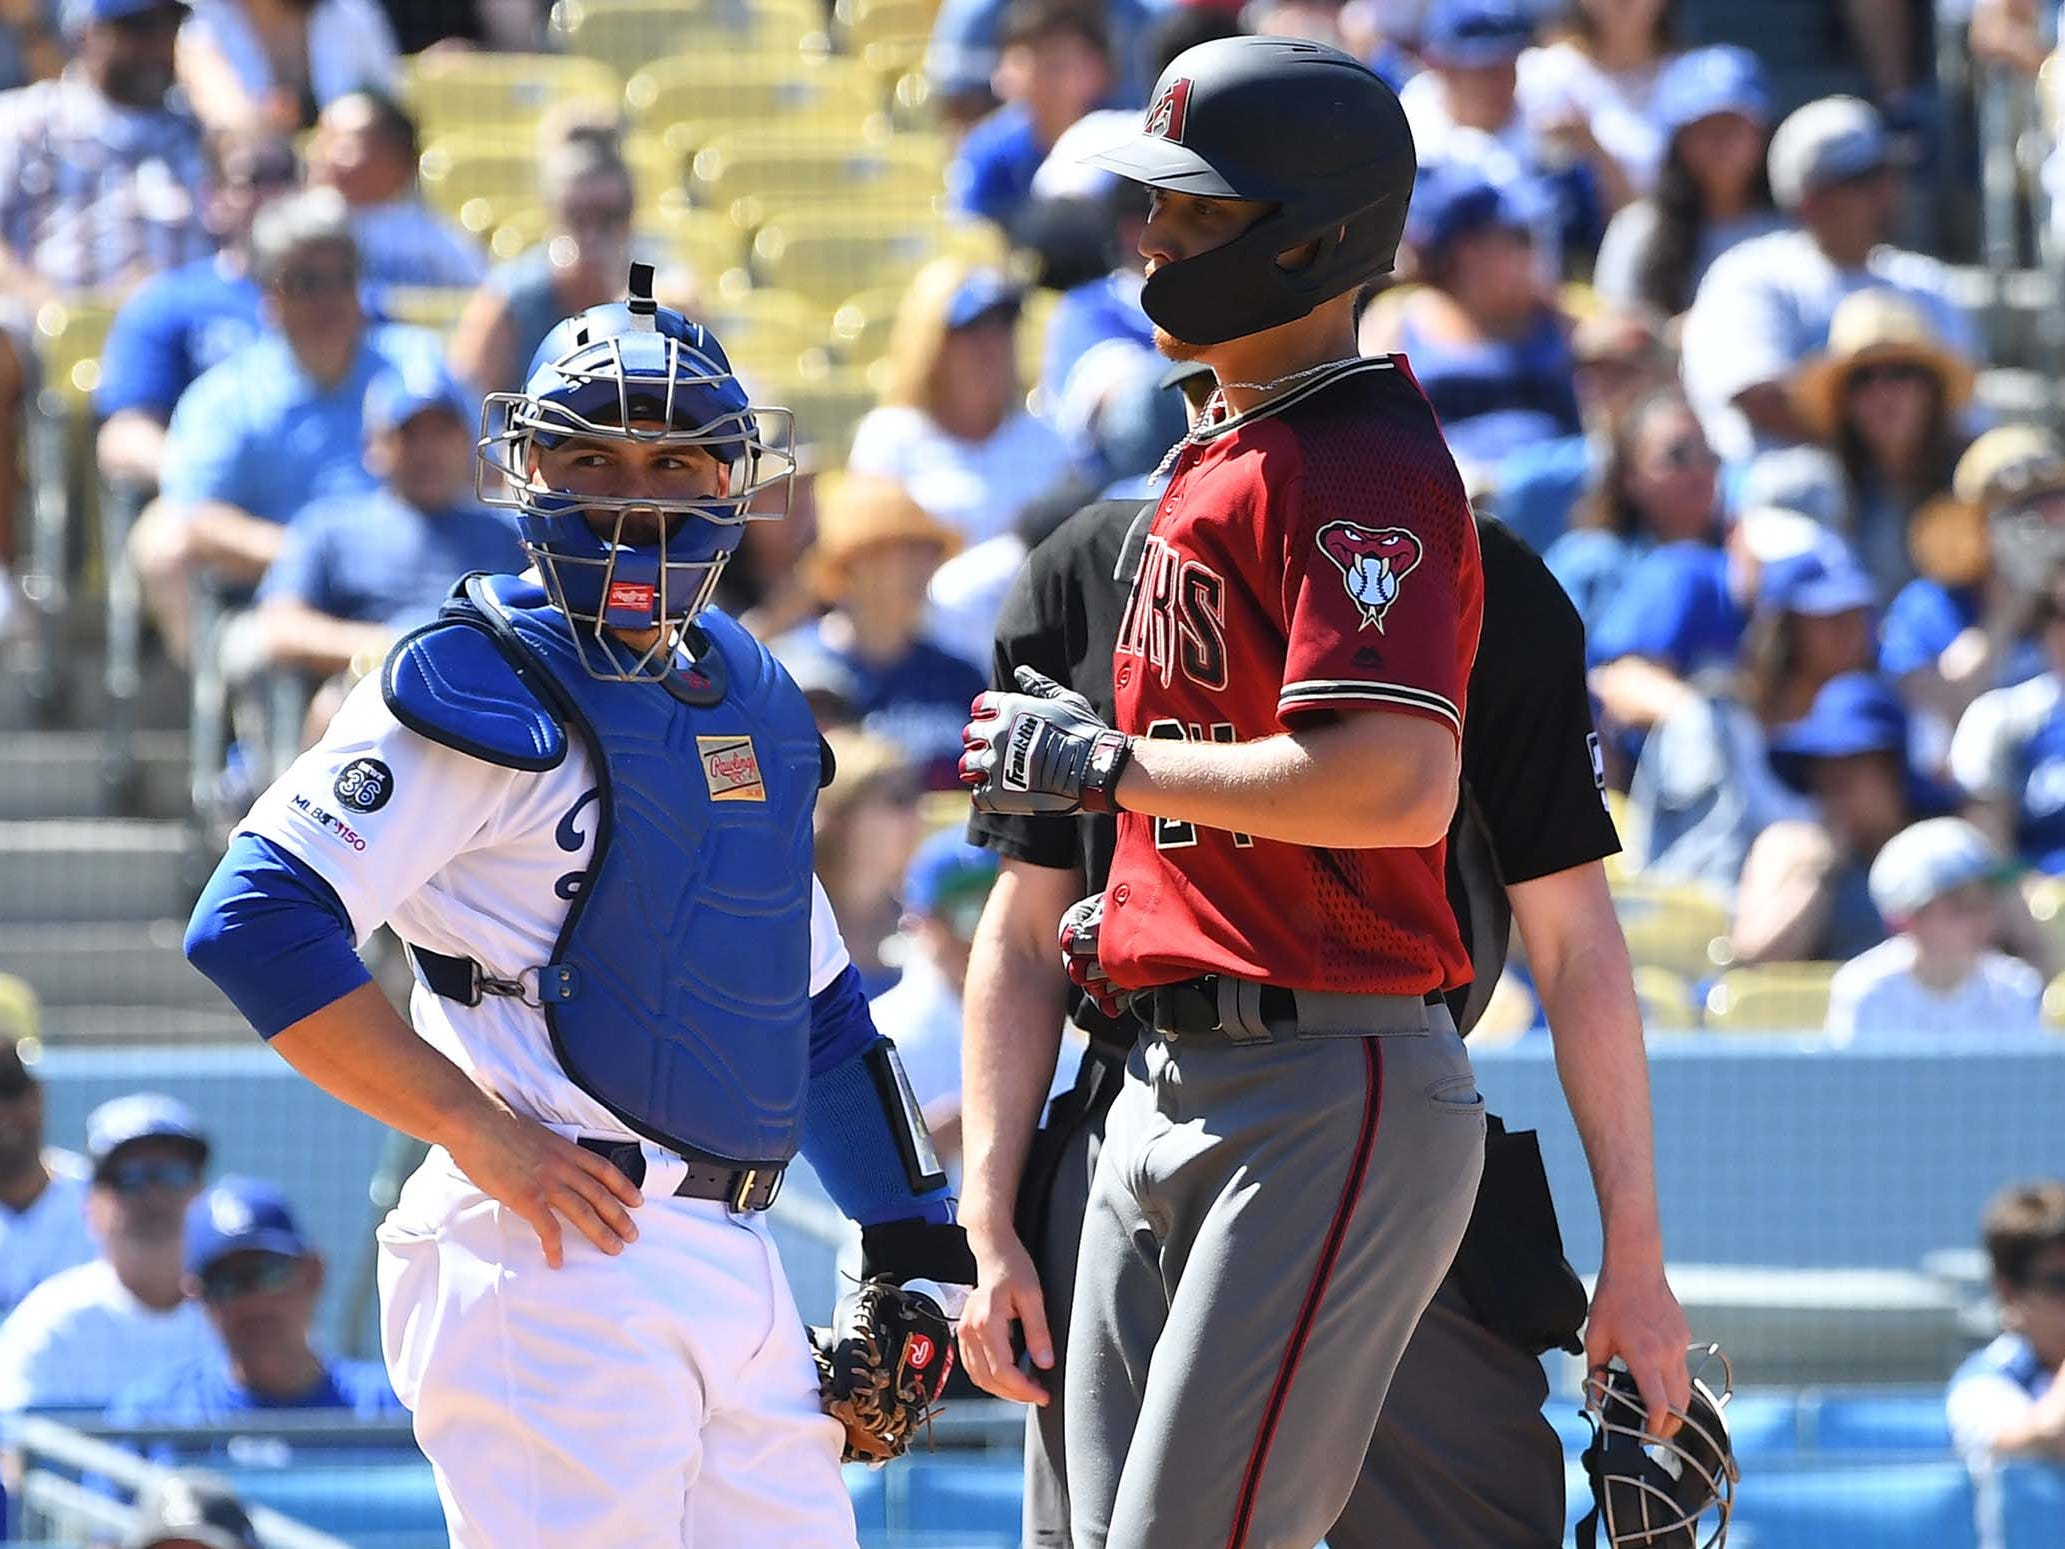 Mar 31, 2019; Los Angeles, CA, USA; Los Angeles Dodgers catcher Russell Martin (55) looks on as Arizona Diamondbacks starting pitcher Luke Weaver (24) crosses the plate after hitting a solo home run in the fourth inning of the game at Dodger Stadium.